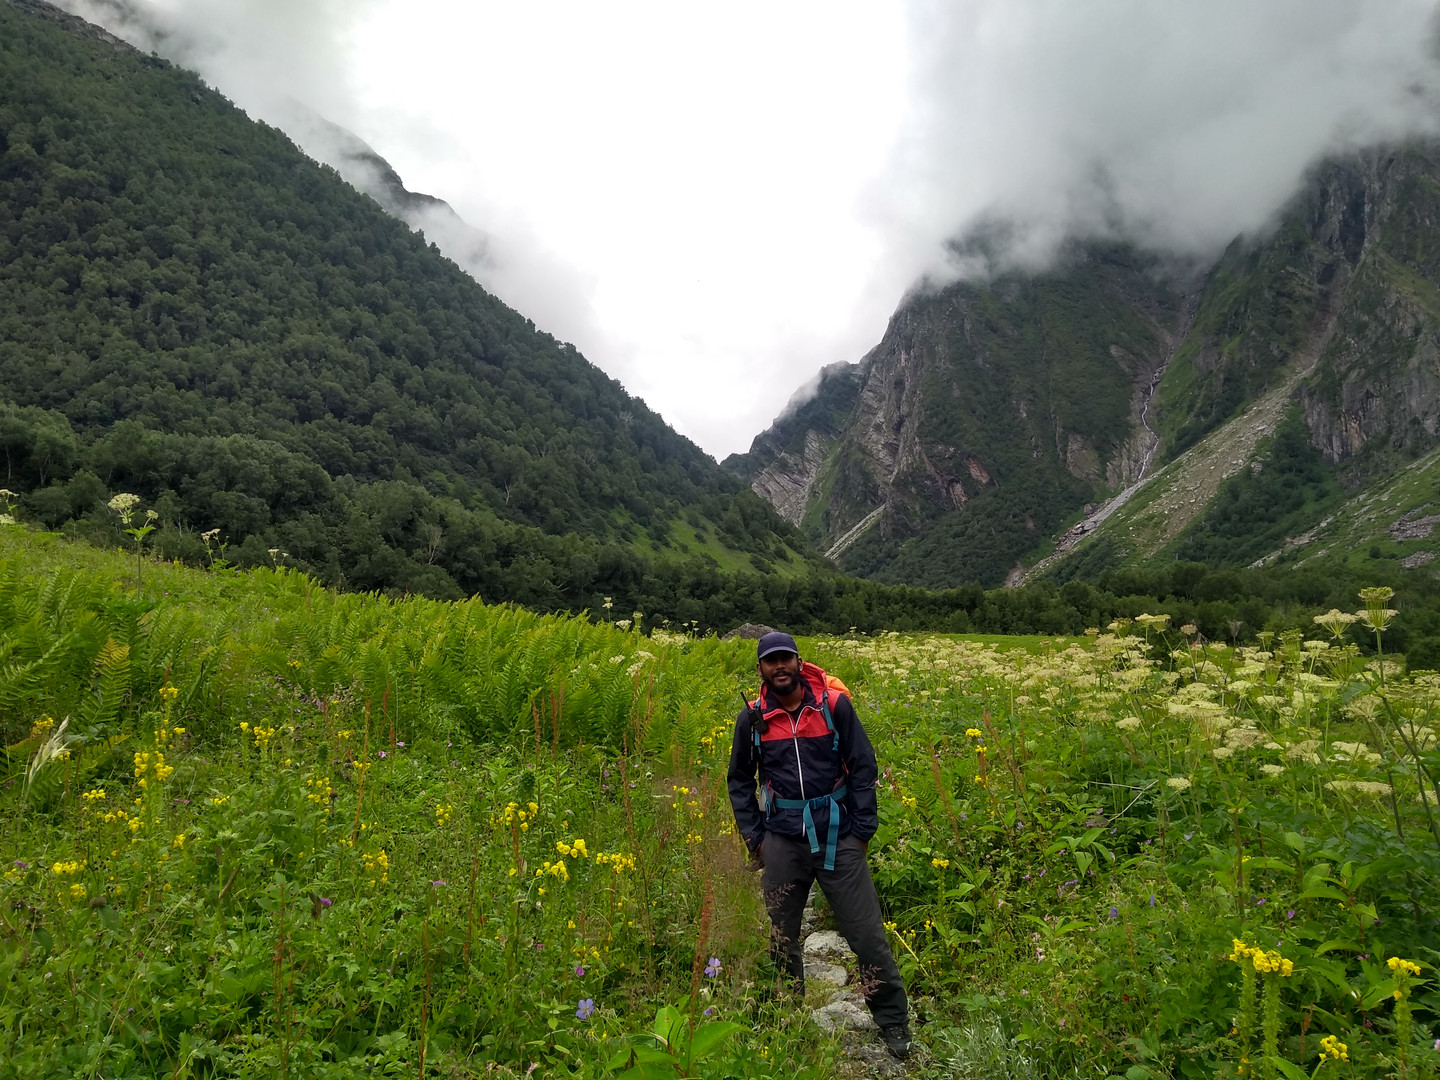 Lost in the Valley of Flowers